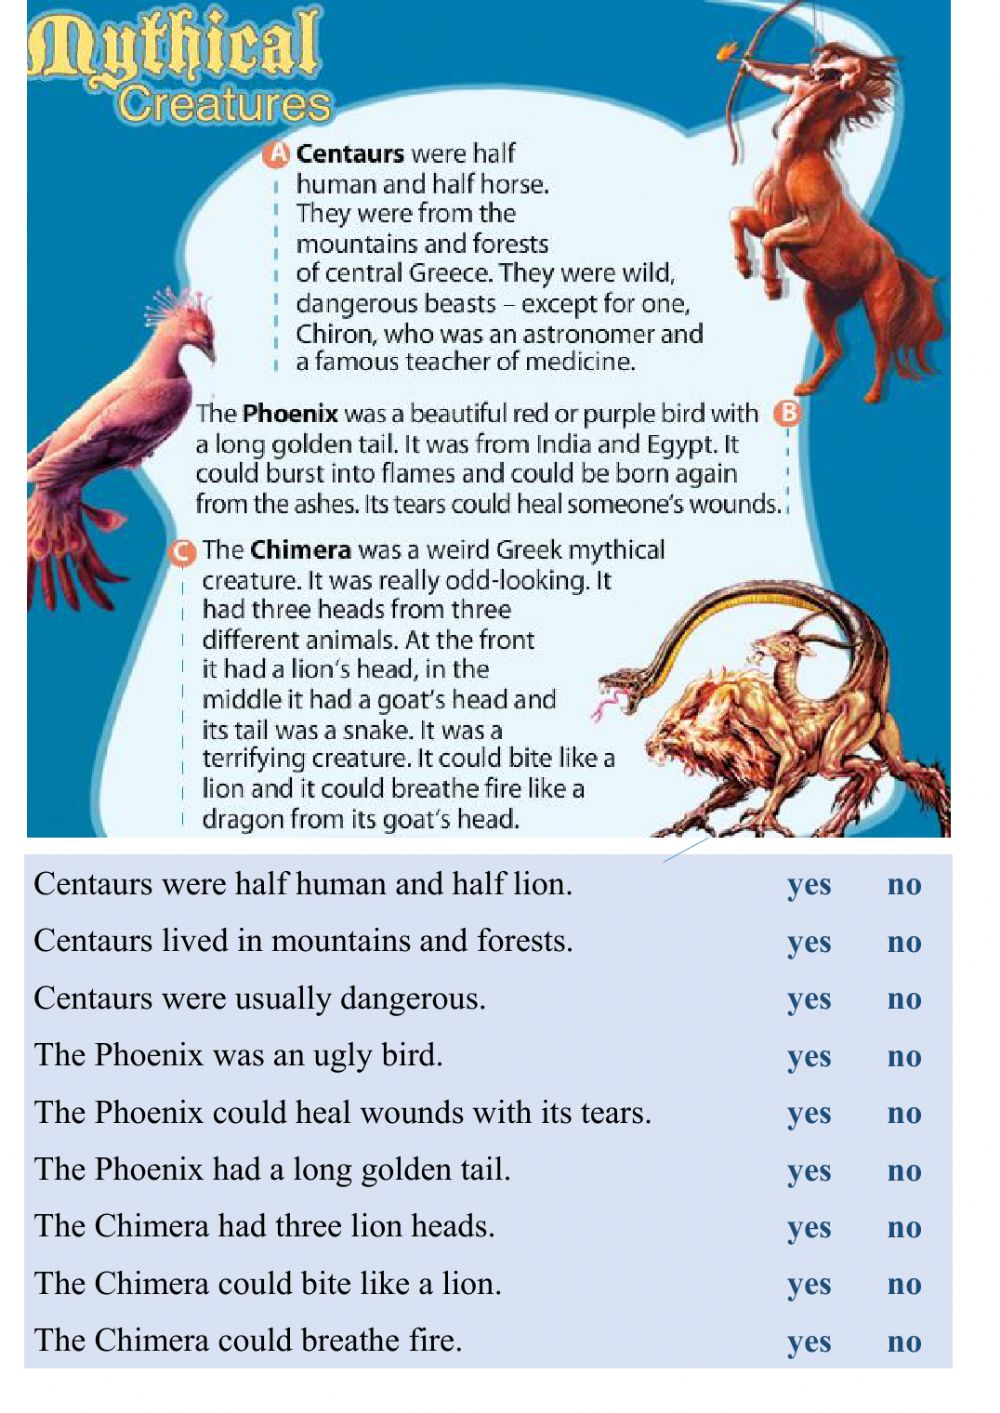 Reading - Mythical creatures worksheet